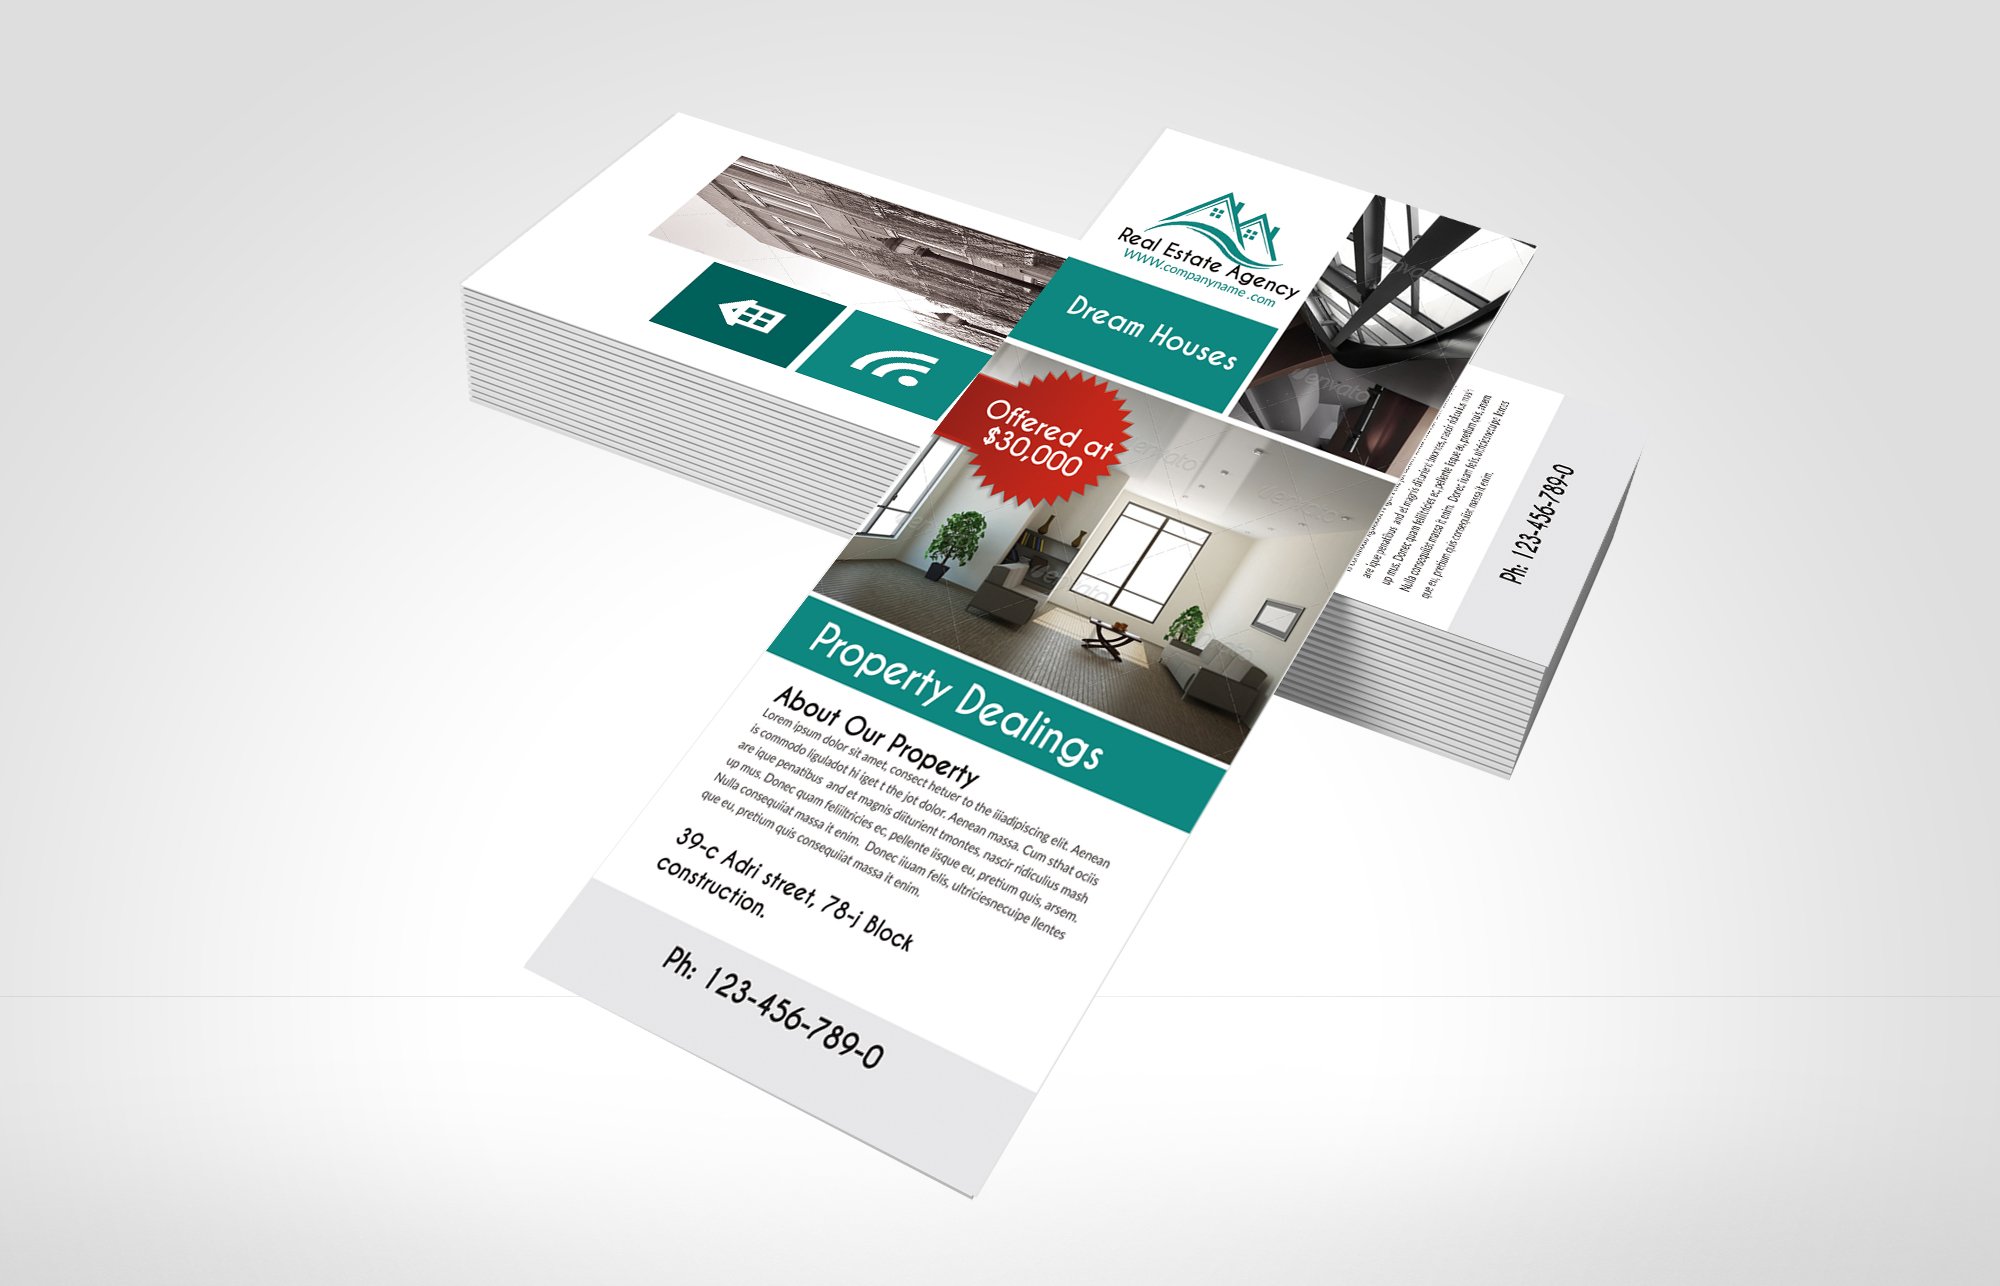 Real Estate Agency Rack Cards example image 2